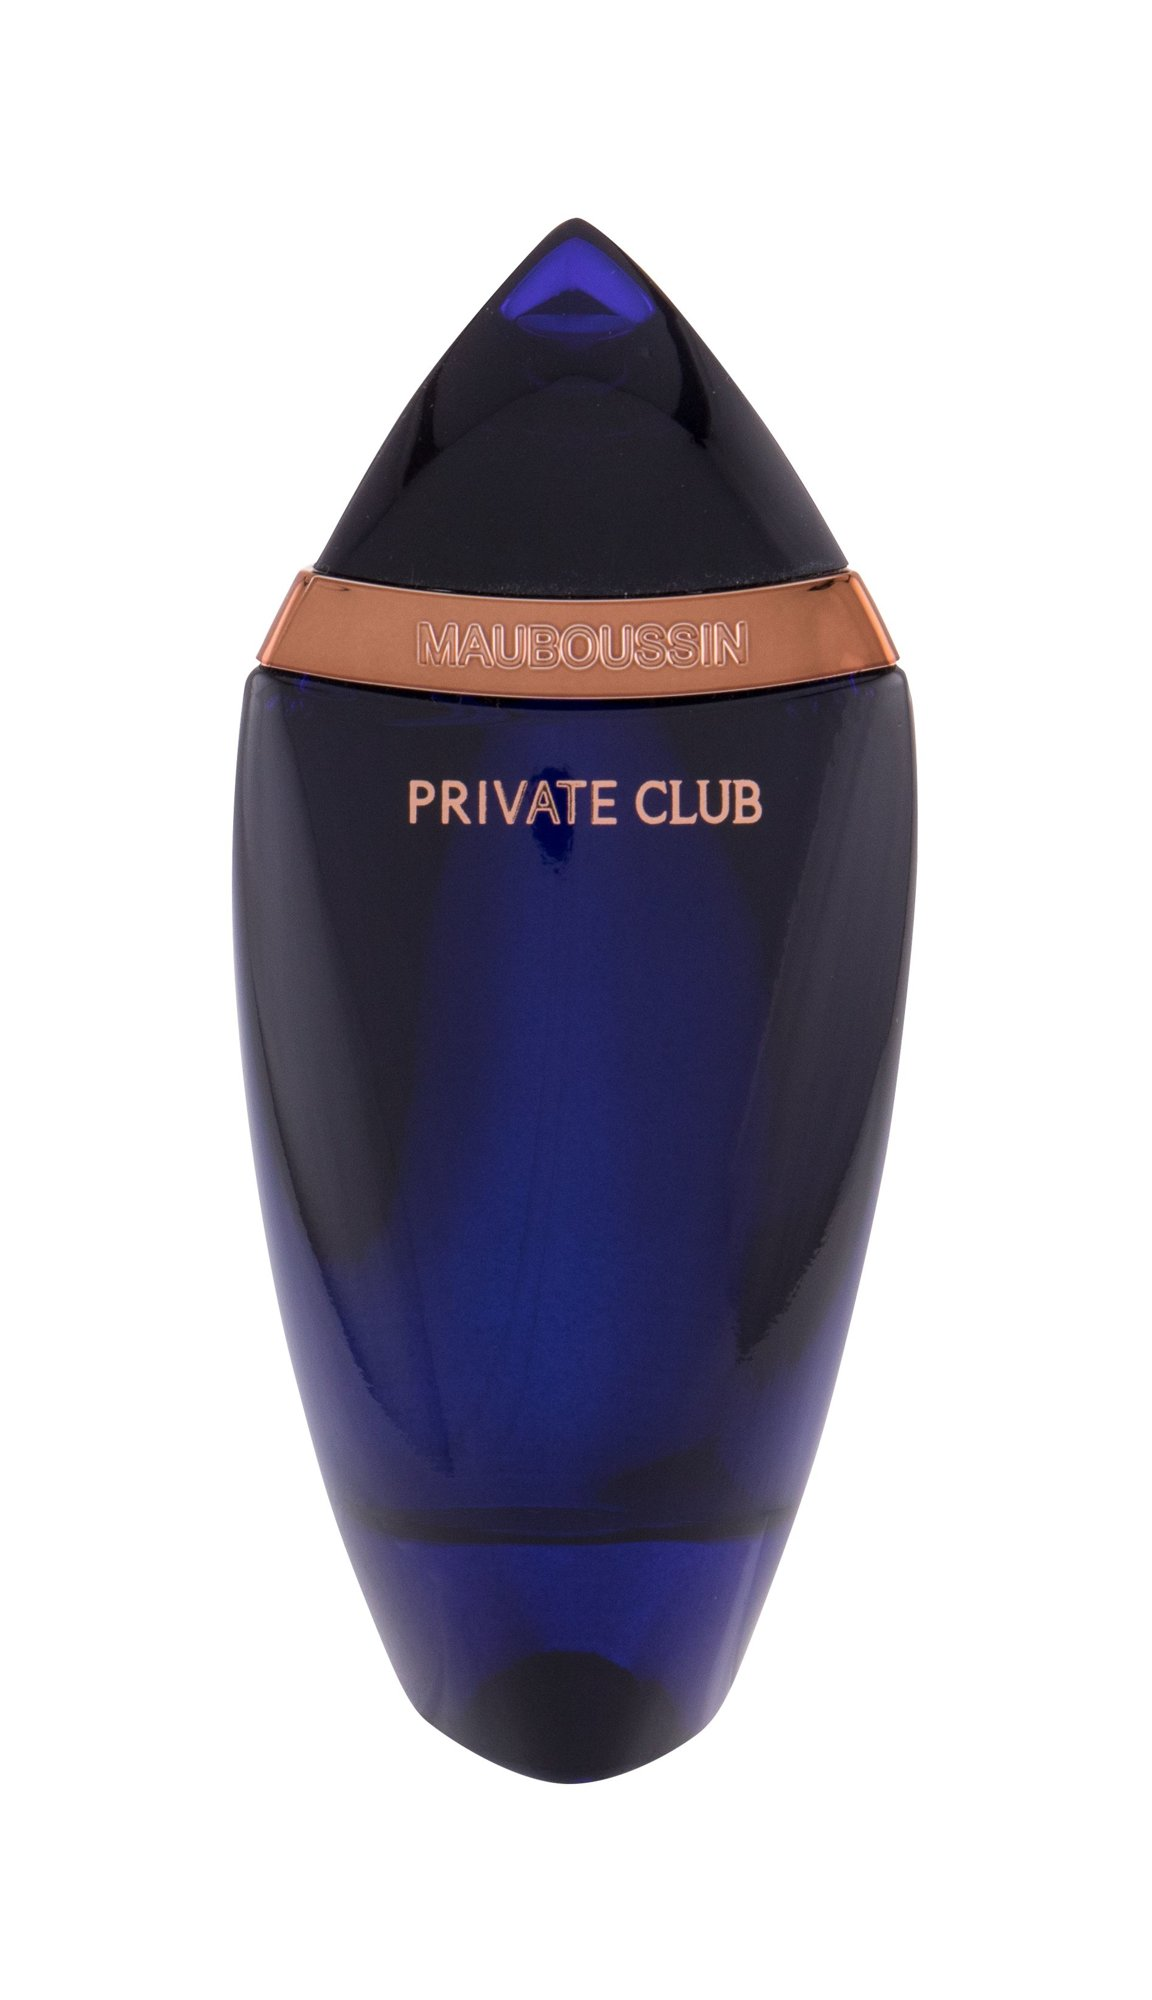 Mauboussin Private Club Eau de Parfum 100ml